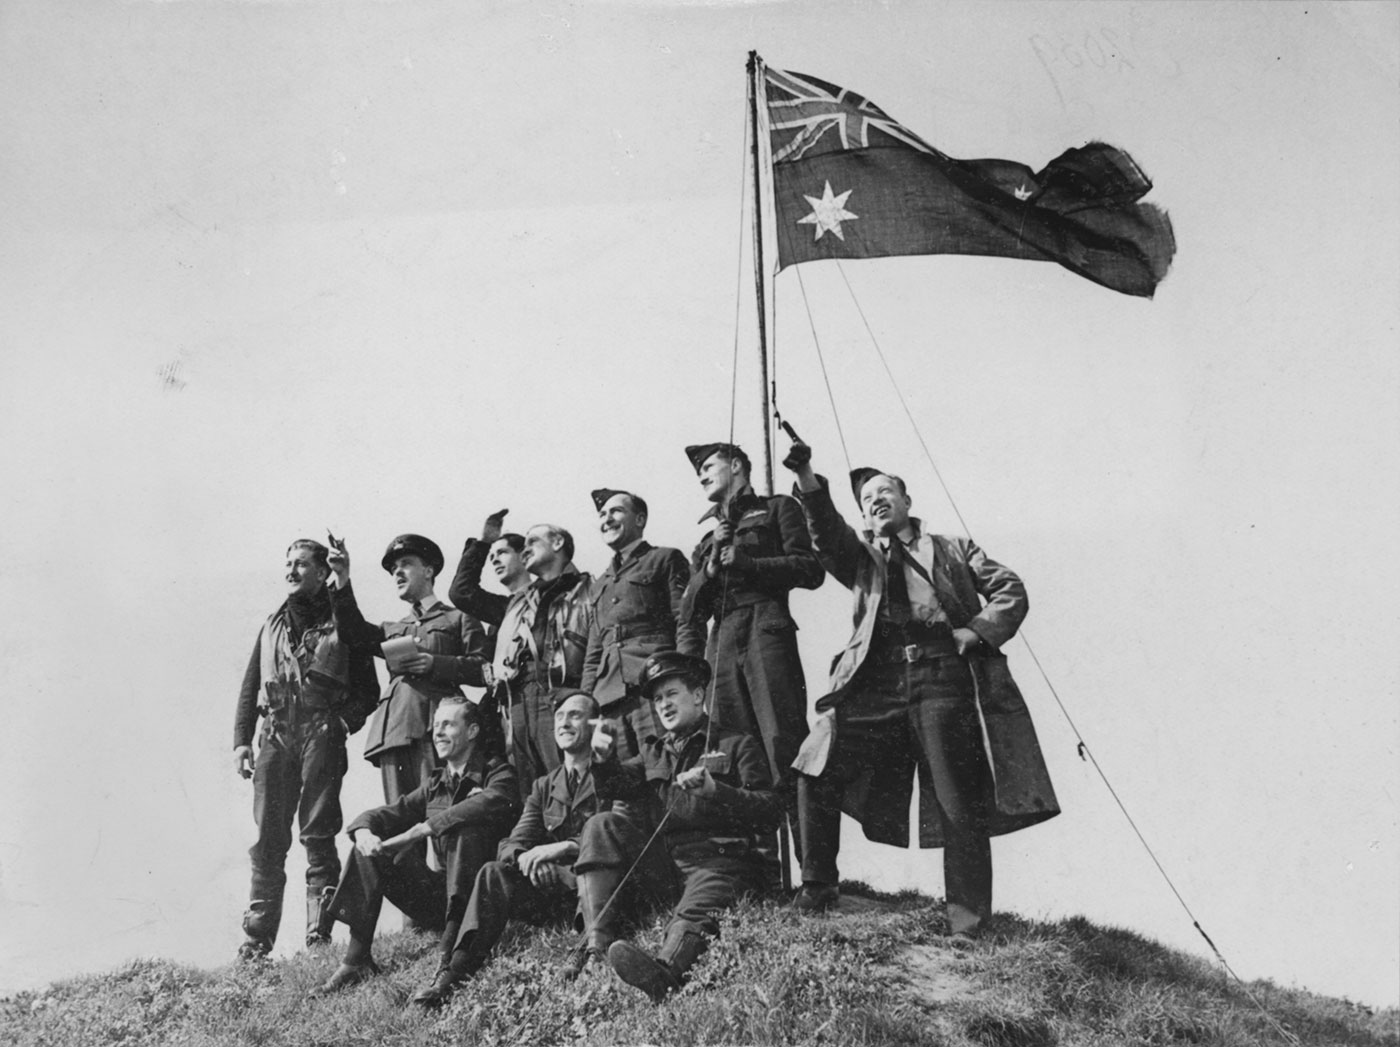 A black and white photograph of an Australian fighter squadron gathered around a raised Australian flag. The men are atop a mound and looking off the left of the photo. - click to view larger image